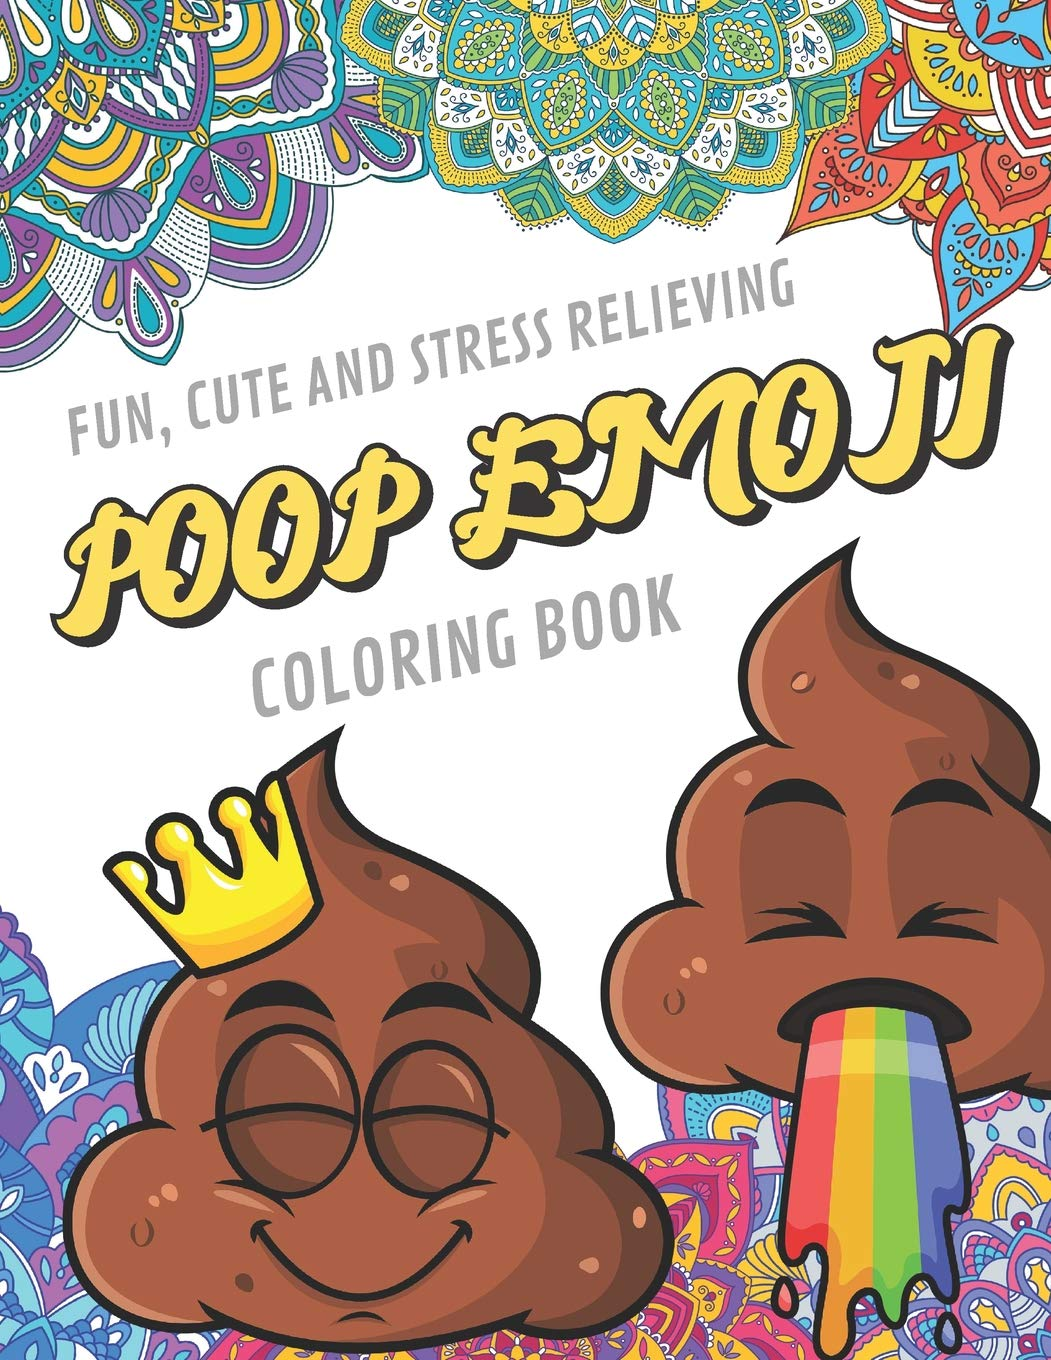 Fun Cute And Stress Relieving Poop Emoji Coloring Book Find Relaxation And Mindfulness By Coloring The Stress Away With These Beautiful Black And White Poop Emoji And Mandala Color Pages For All